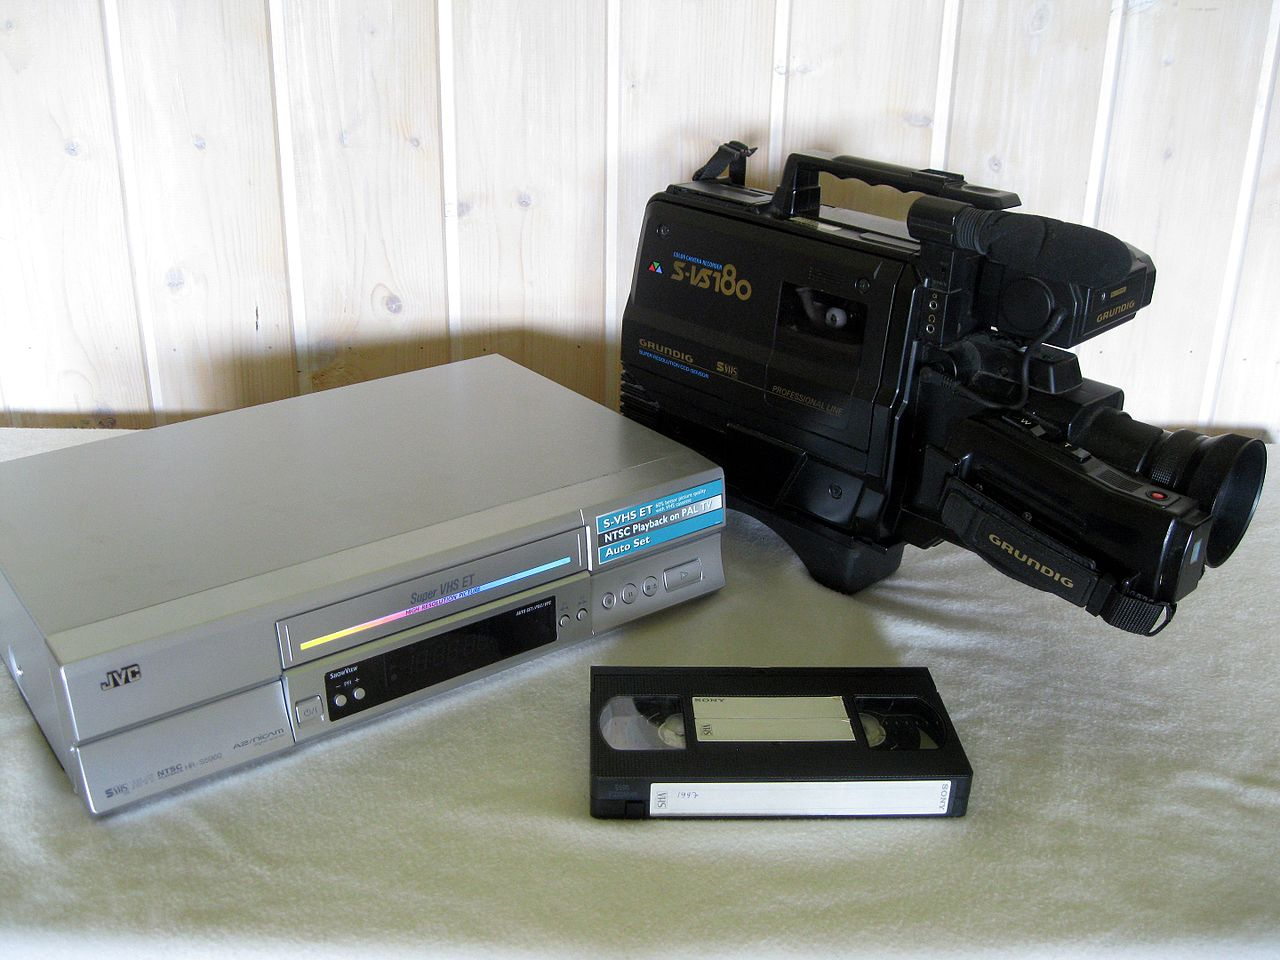 File:VHS recorder, camera and cassette.jpg - Wikimedia Commons